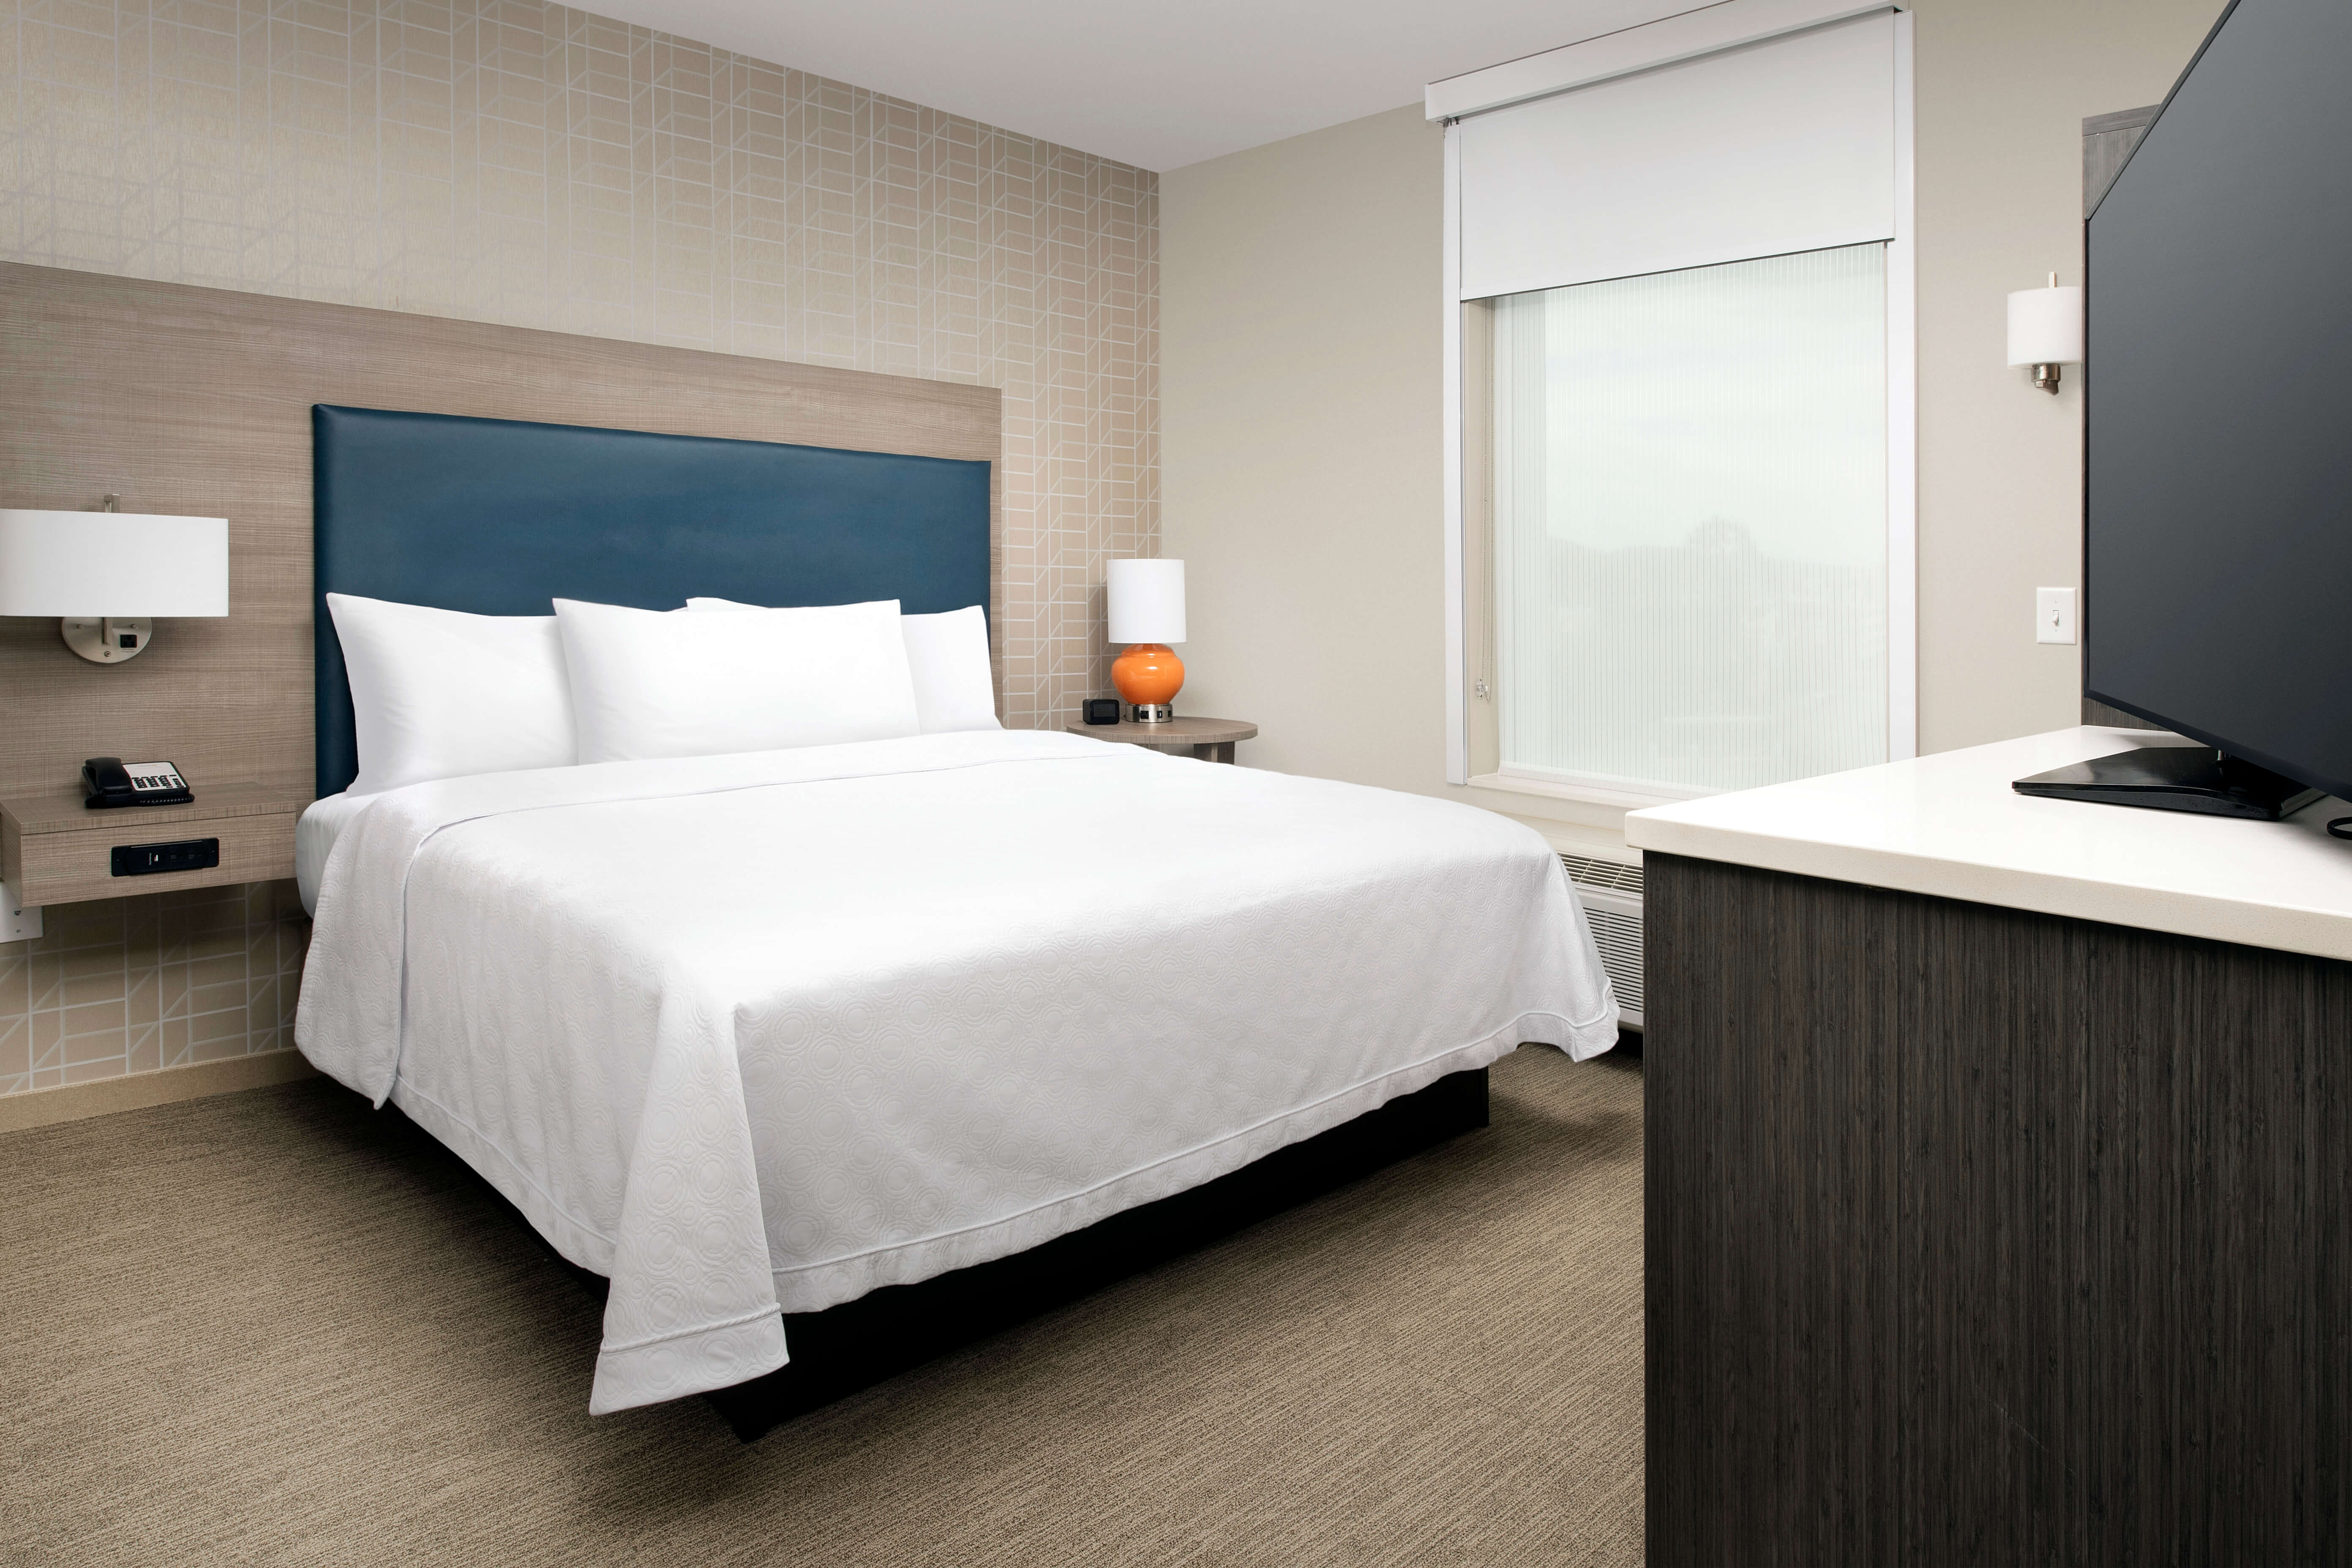 Home2 Suites by Hilton Charlottesville Downtown